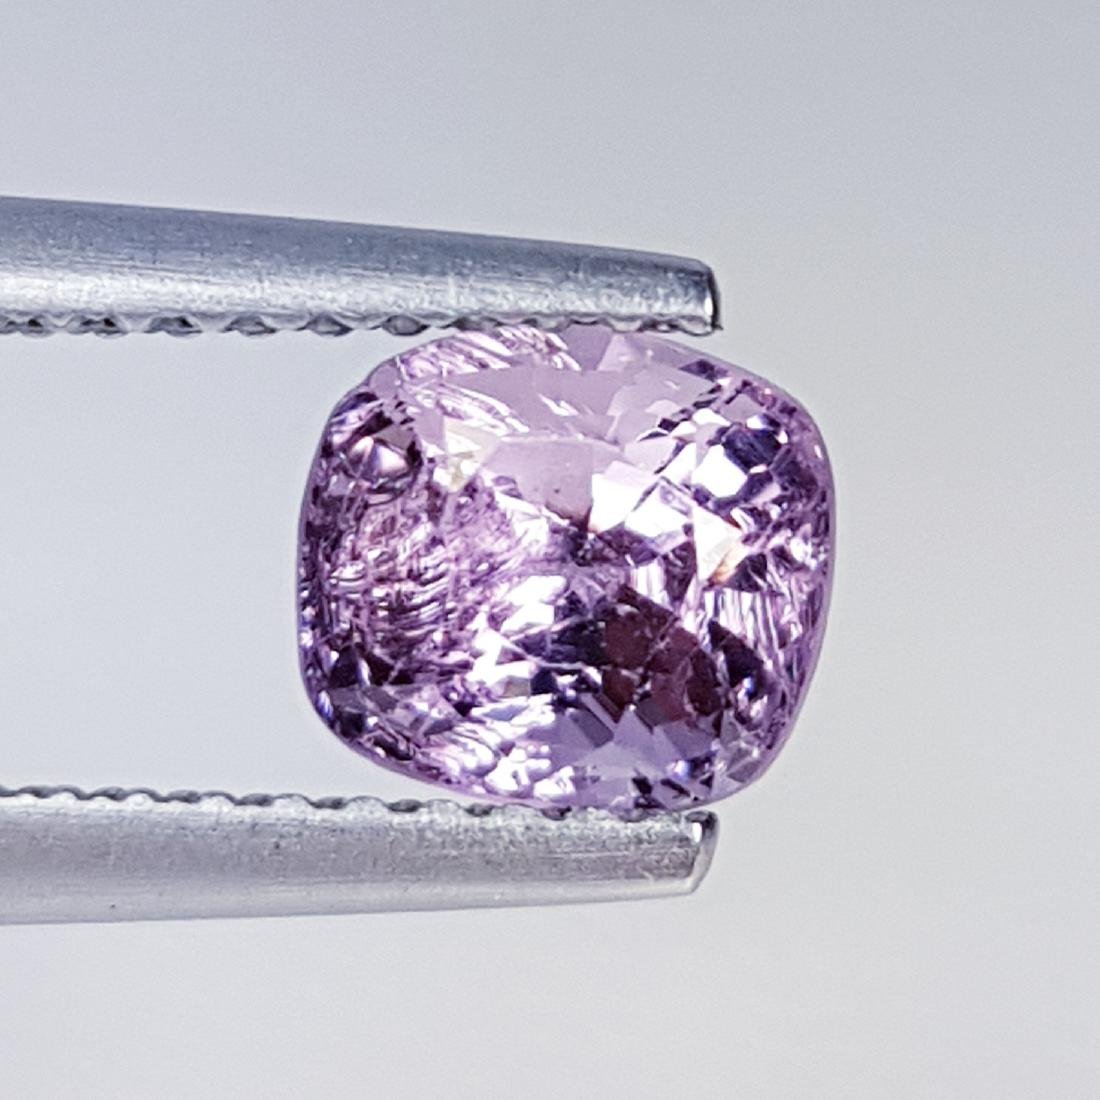 1.29 ct Awesome Gem Natural Spinel - 3